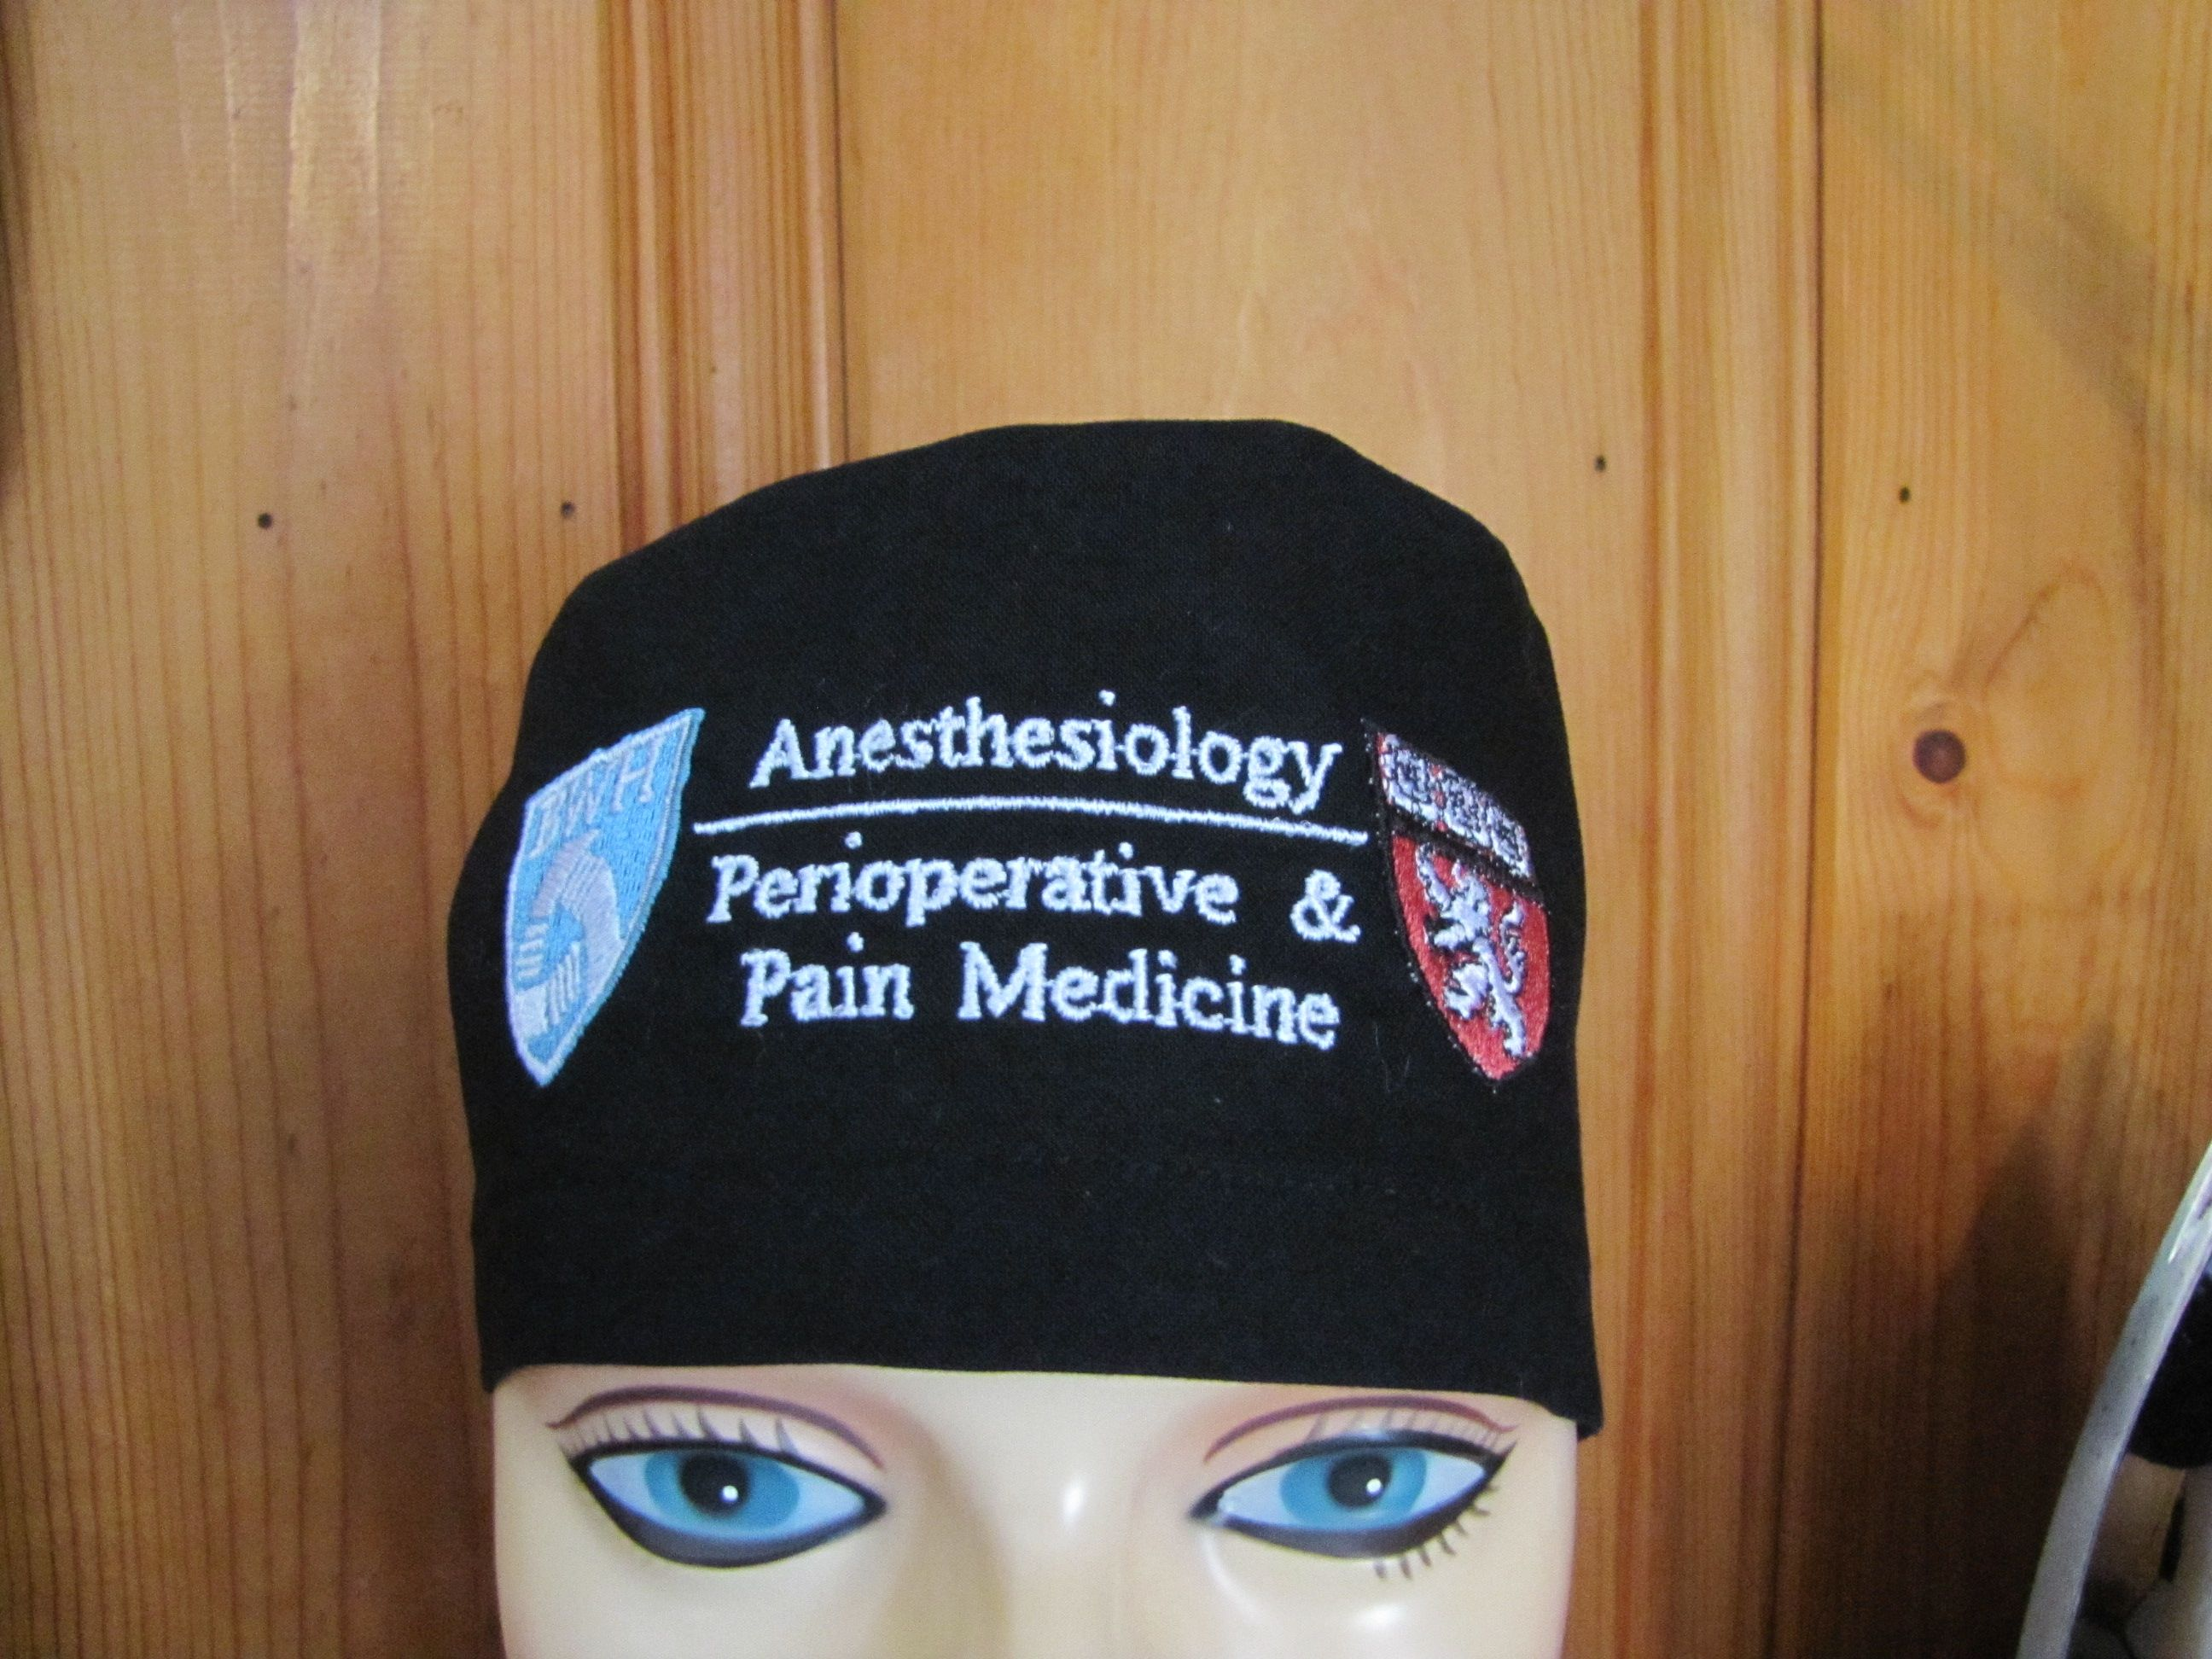 BWH Harvard Anesthesiology custom surgical caps  8869ad553c8